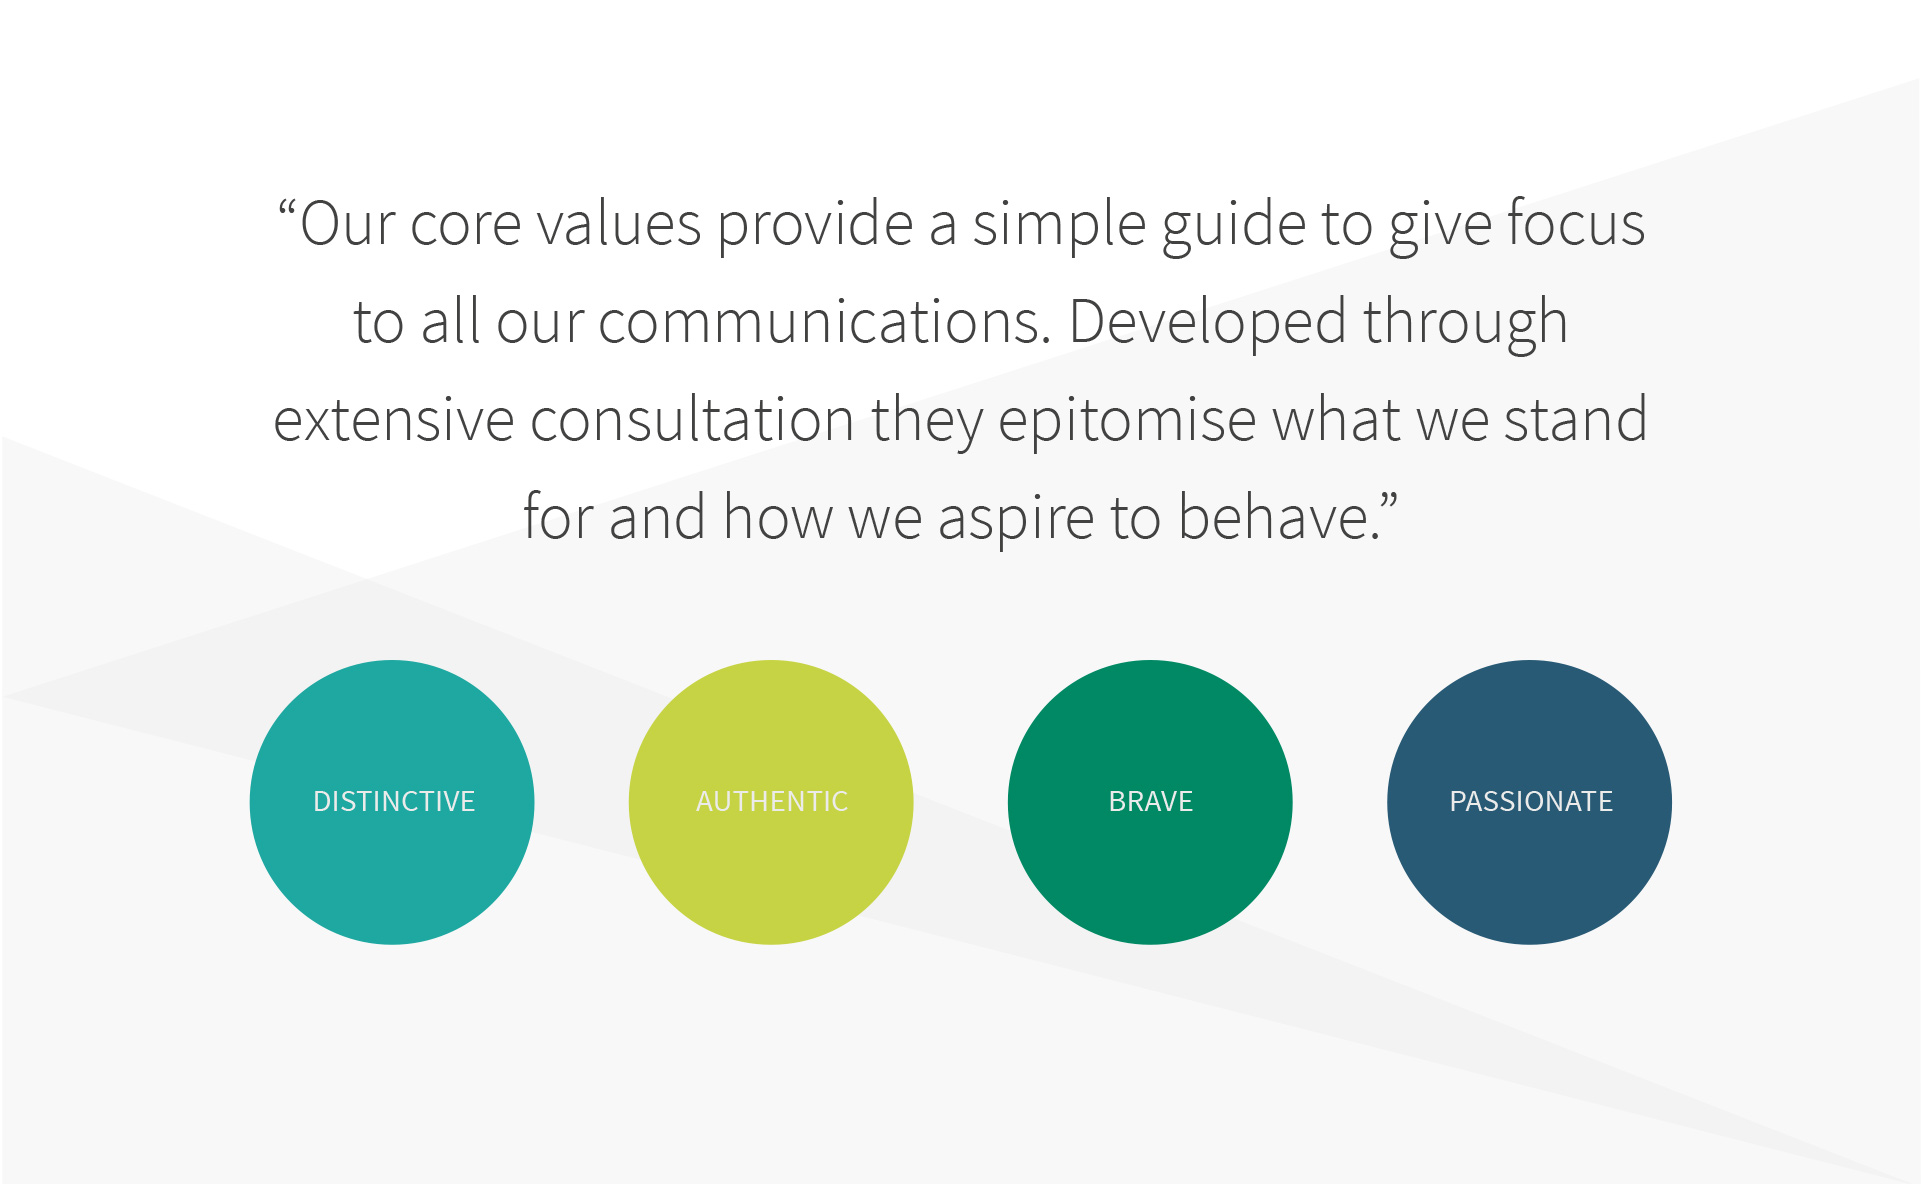 Alexander mann brand guidelines values page